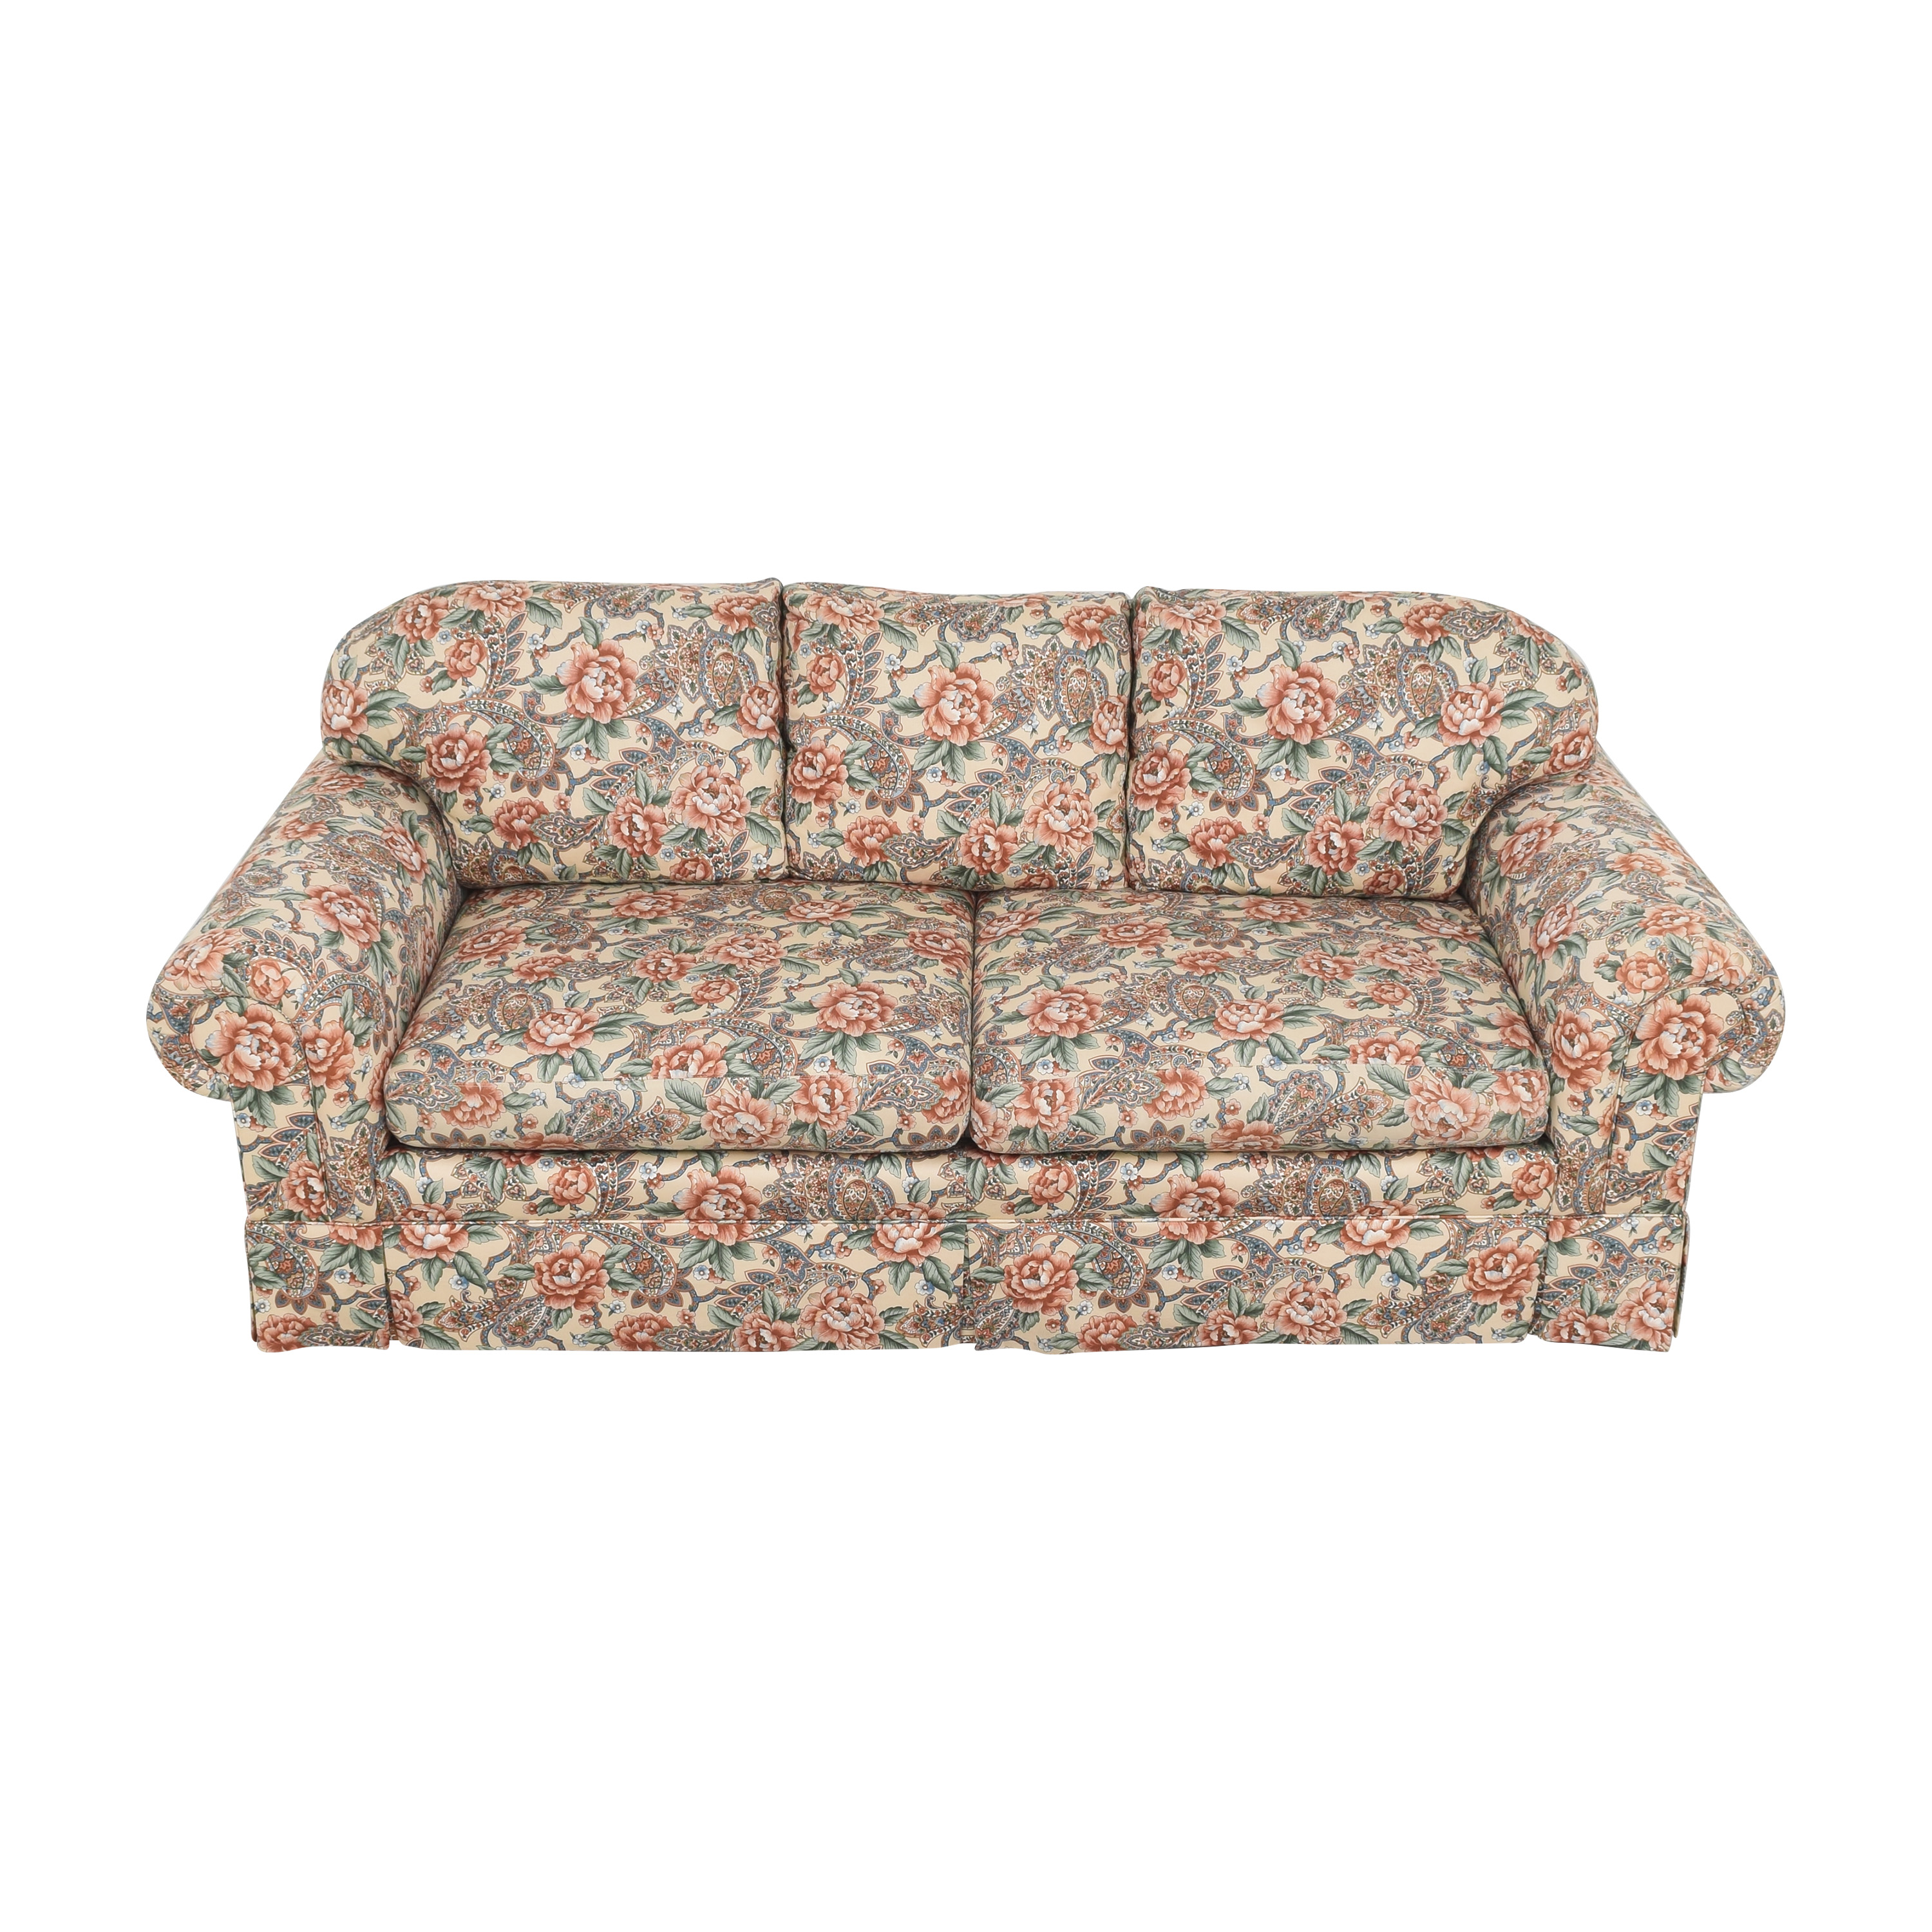 EJ Victor EJ Victor Floral and Paisley Skirted Sofa second hand